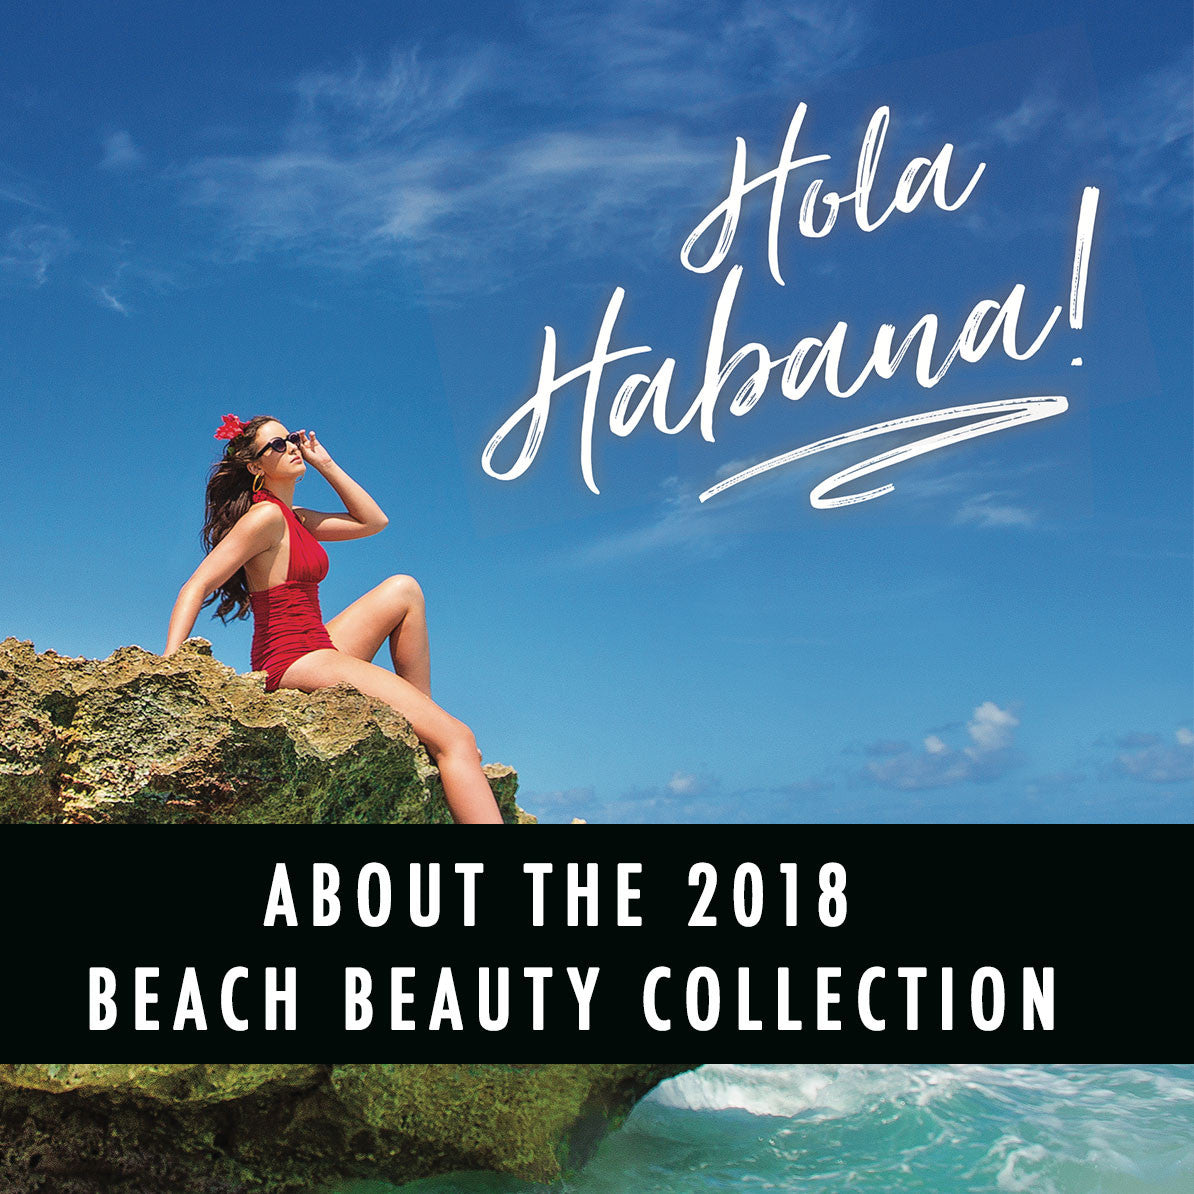 The 2018 Beach Beauty Collection is HERE!